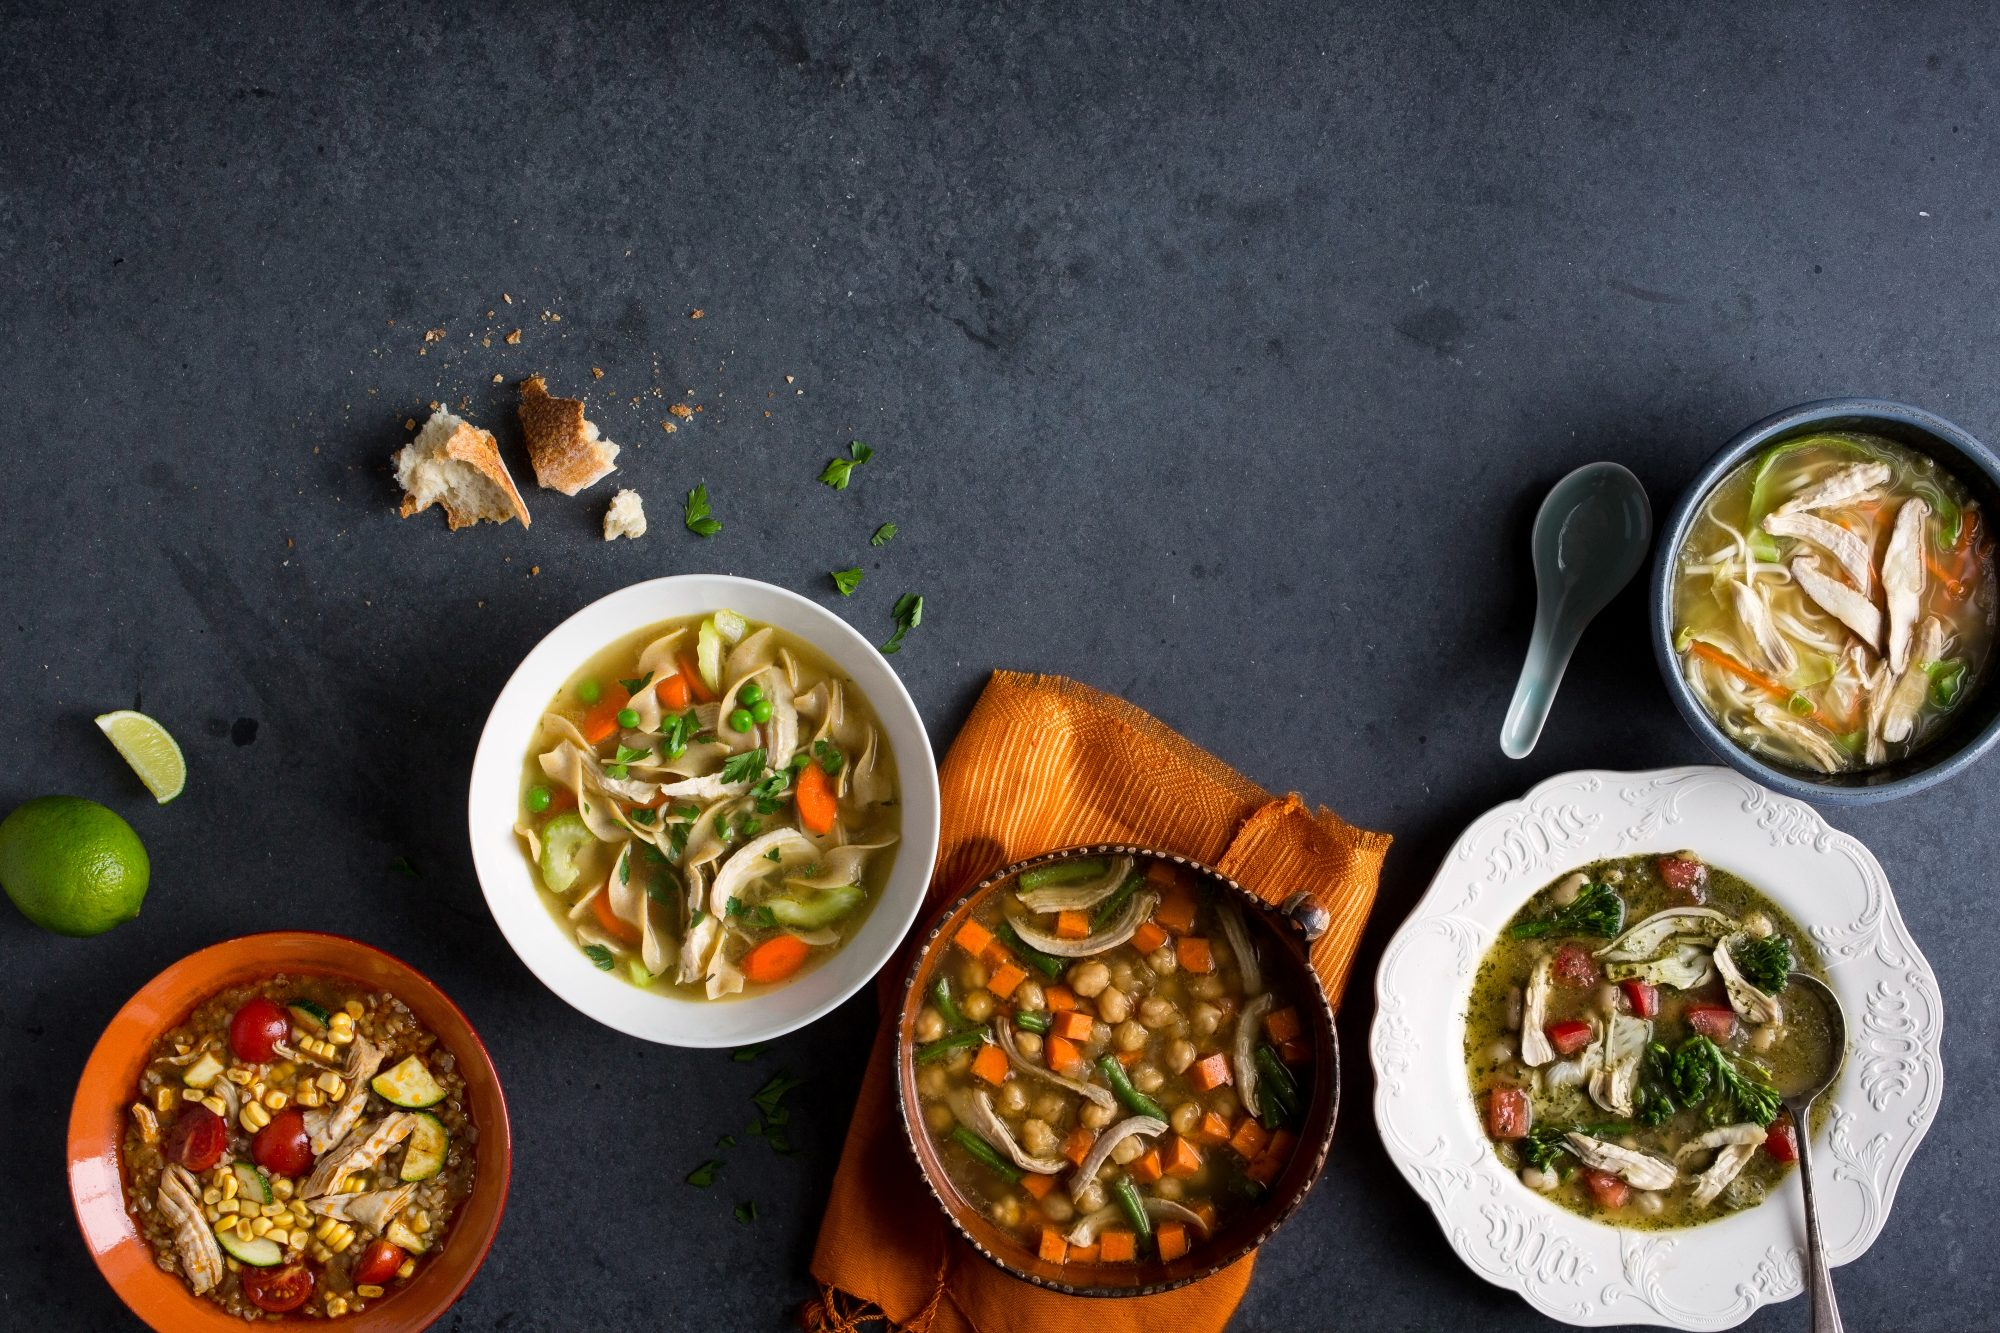 https://www.eatingwell.com/article/7884788/chicken-soups/